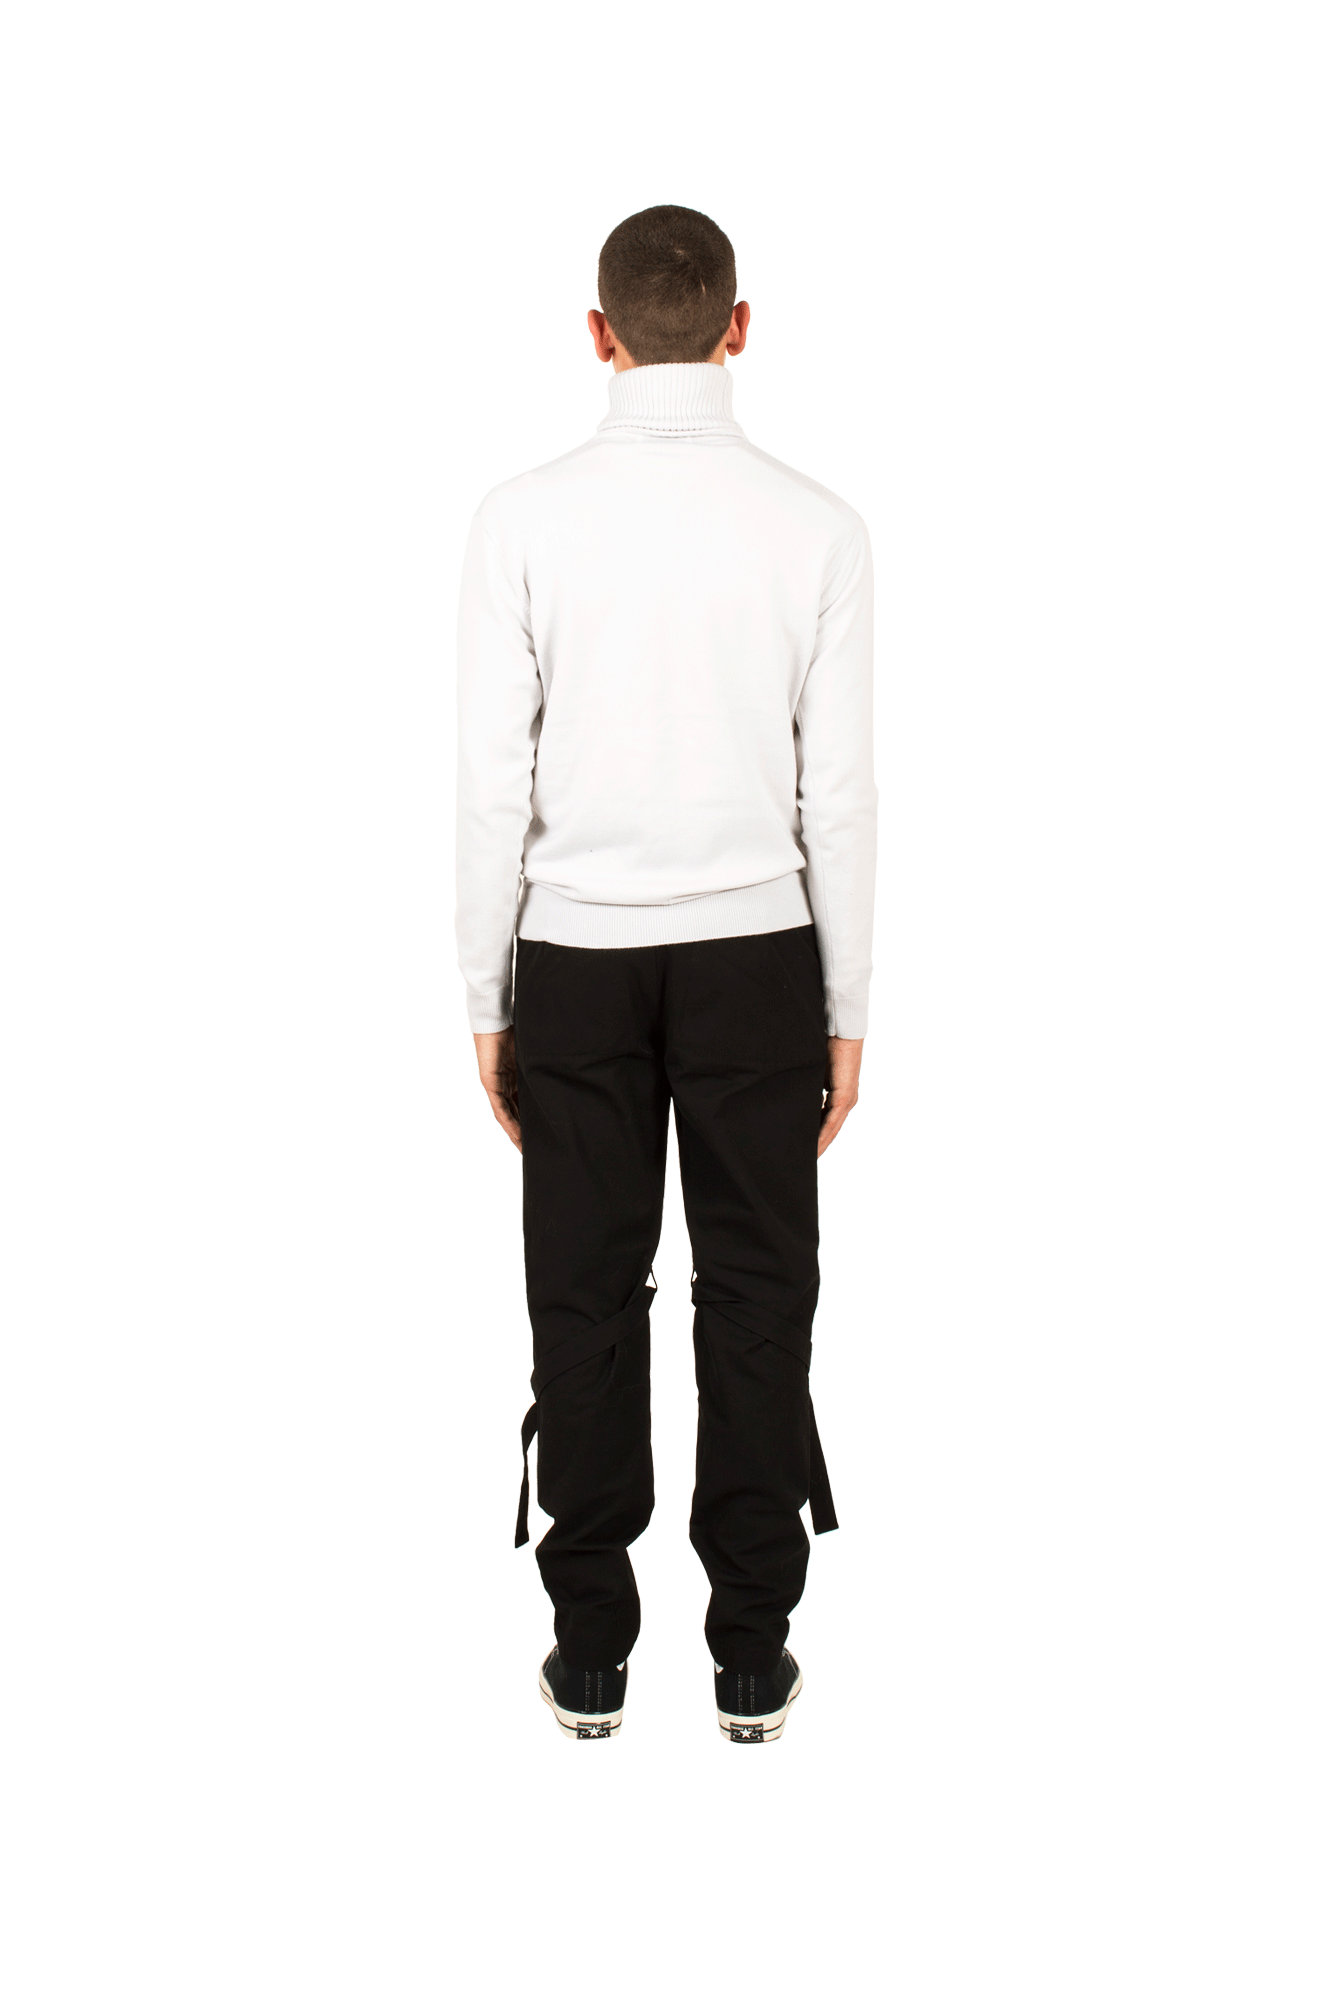 Ambush Knitwear Turtle Neck Emboss Knit White 12111826#000#WHT#1 - One Block Down